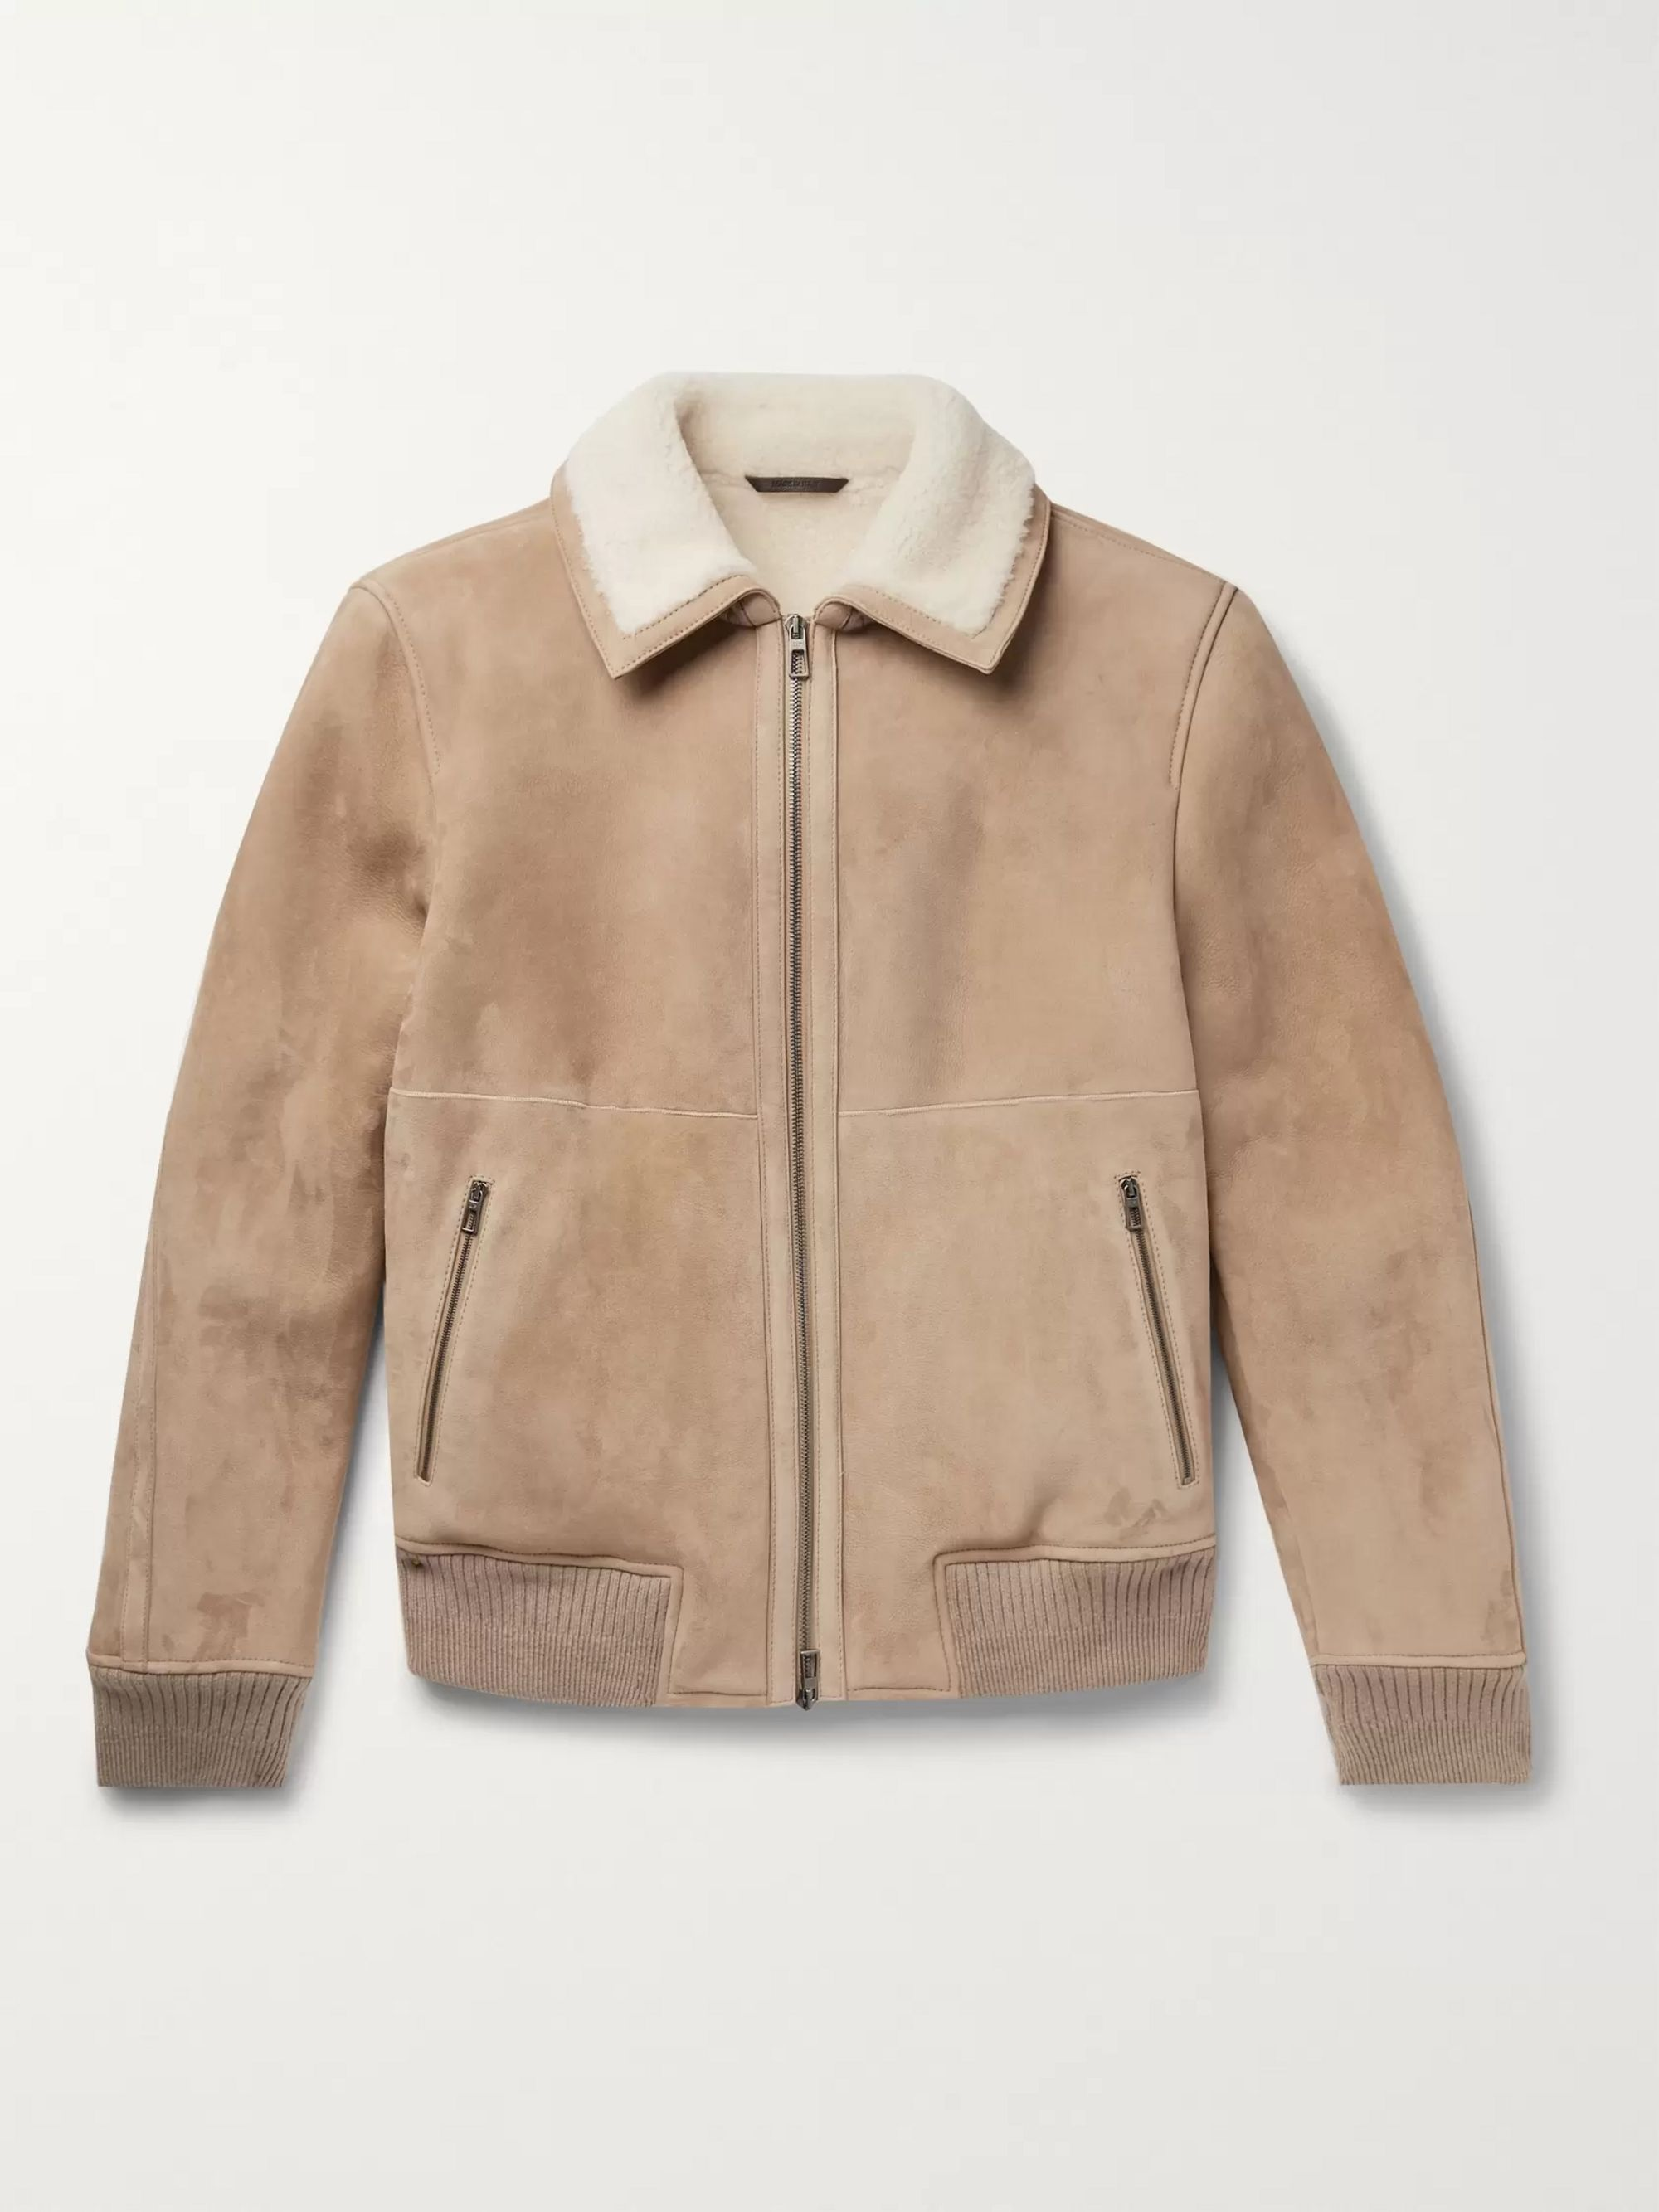 Cashmere Trimmed Shearling Bomber Jacket by Loro Piana